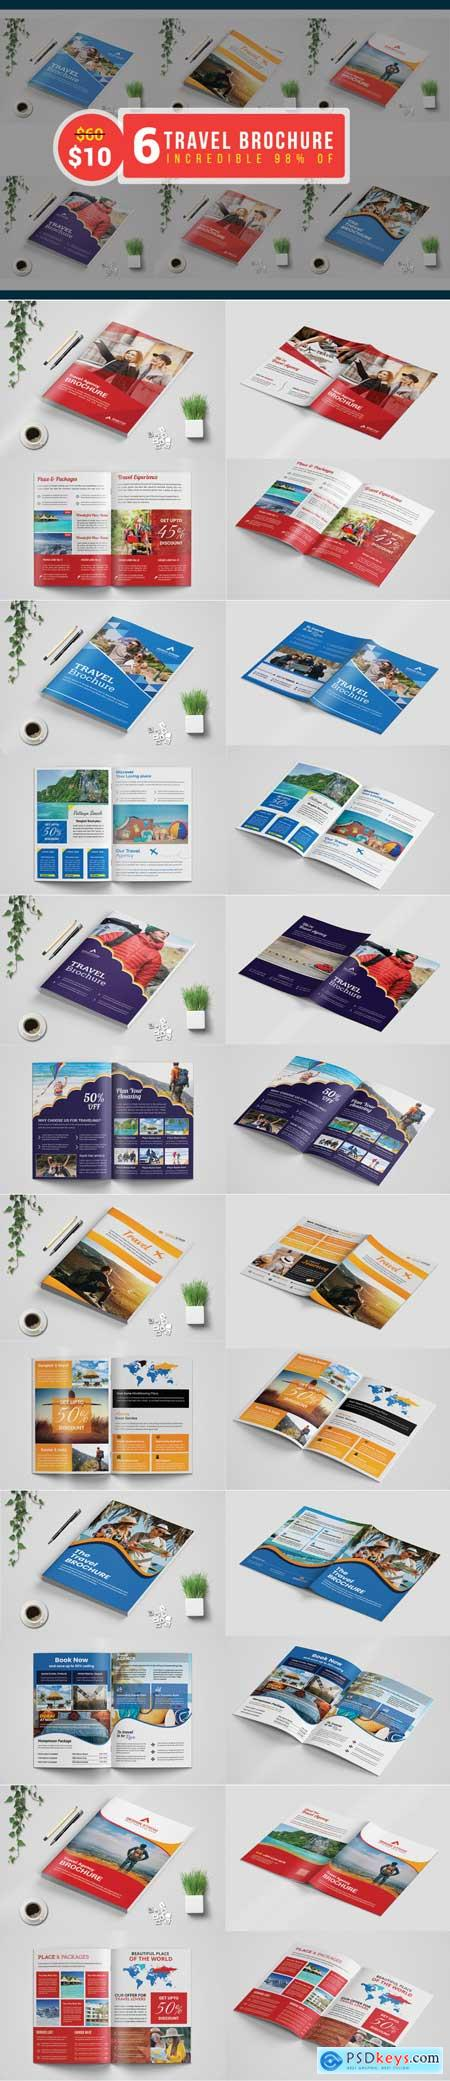 Thehungryjpeg Travel Agency Brochure template Bundle